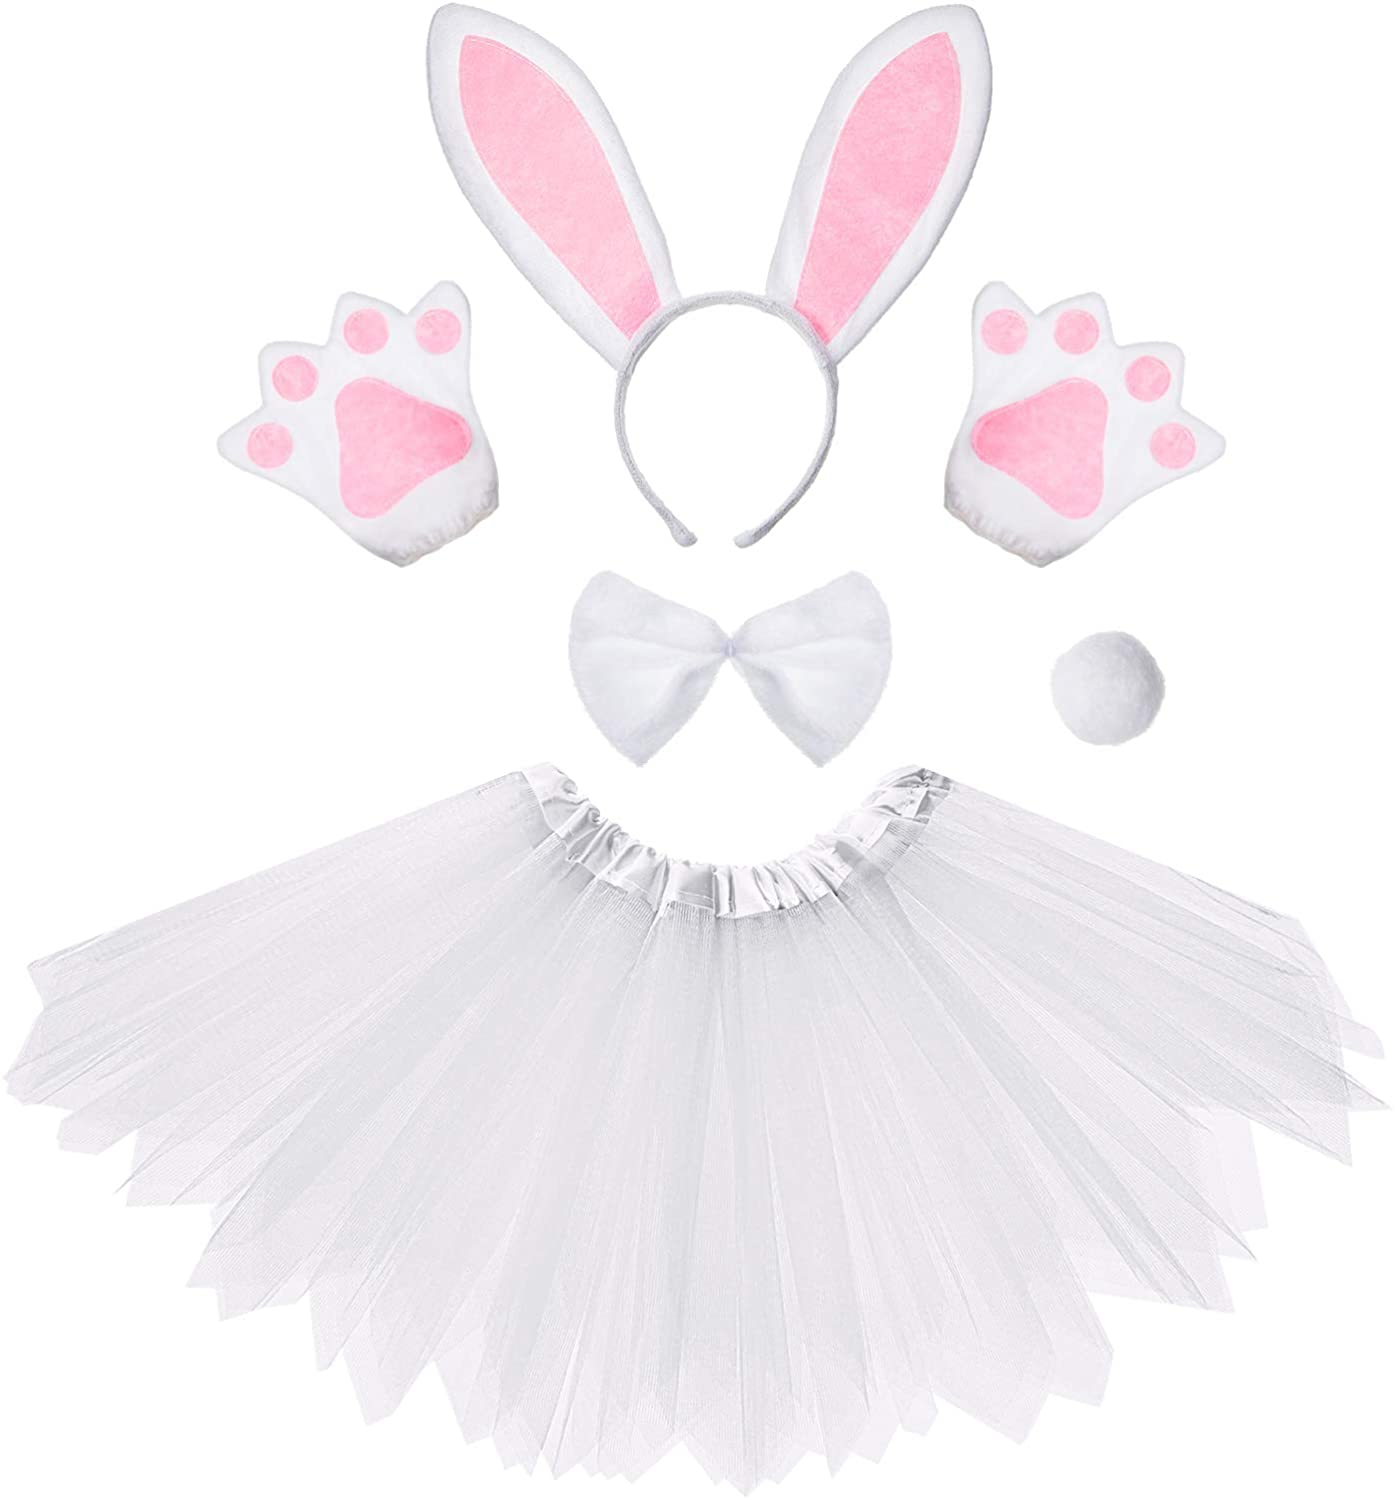 Kids Animal Tutu Skirt Costumes with Bow Tie Tail Gloves for Halloween